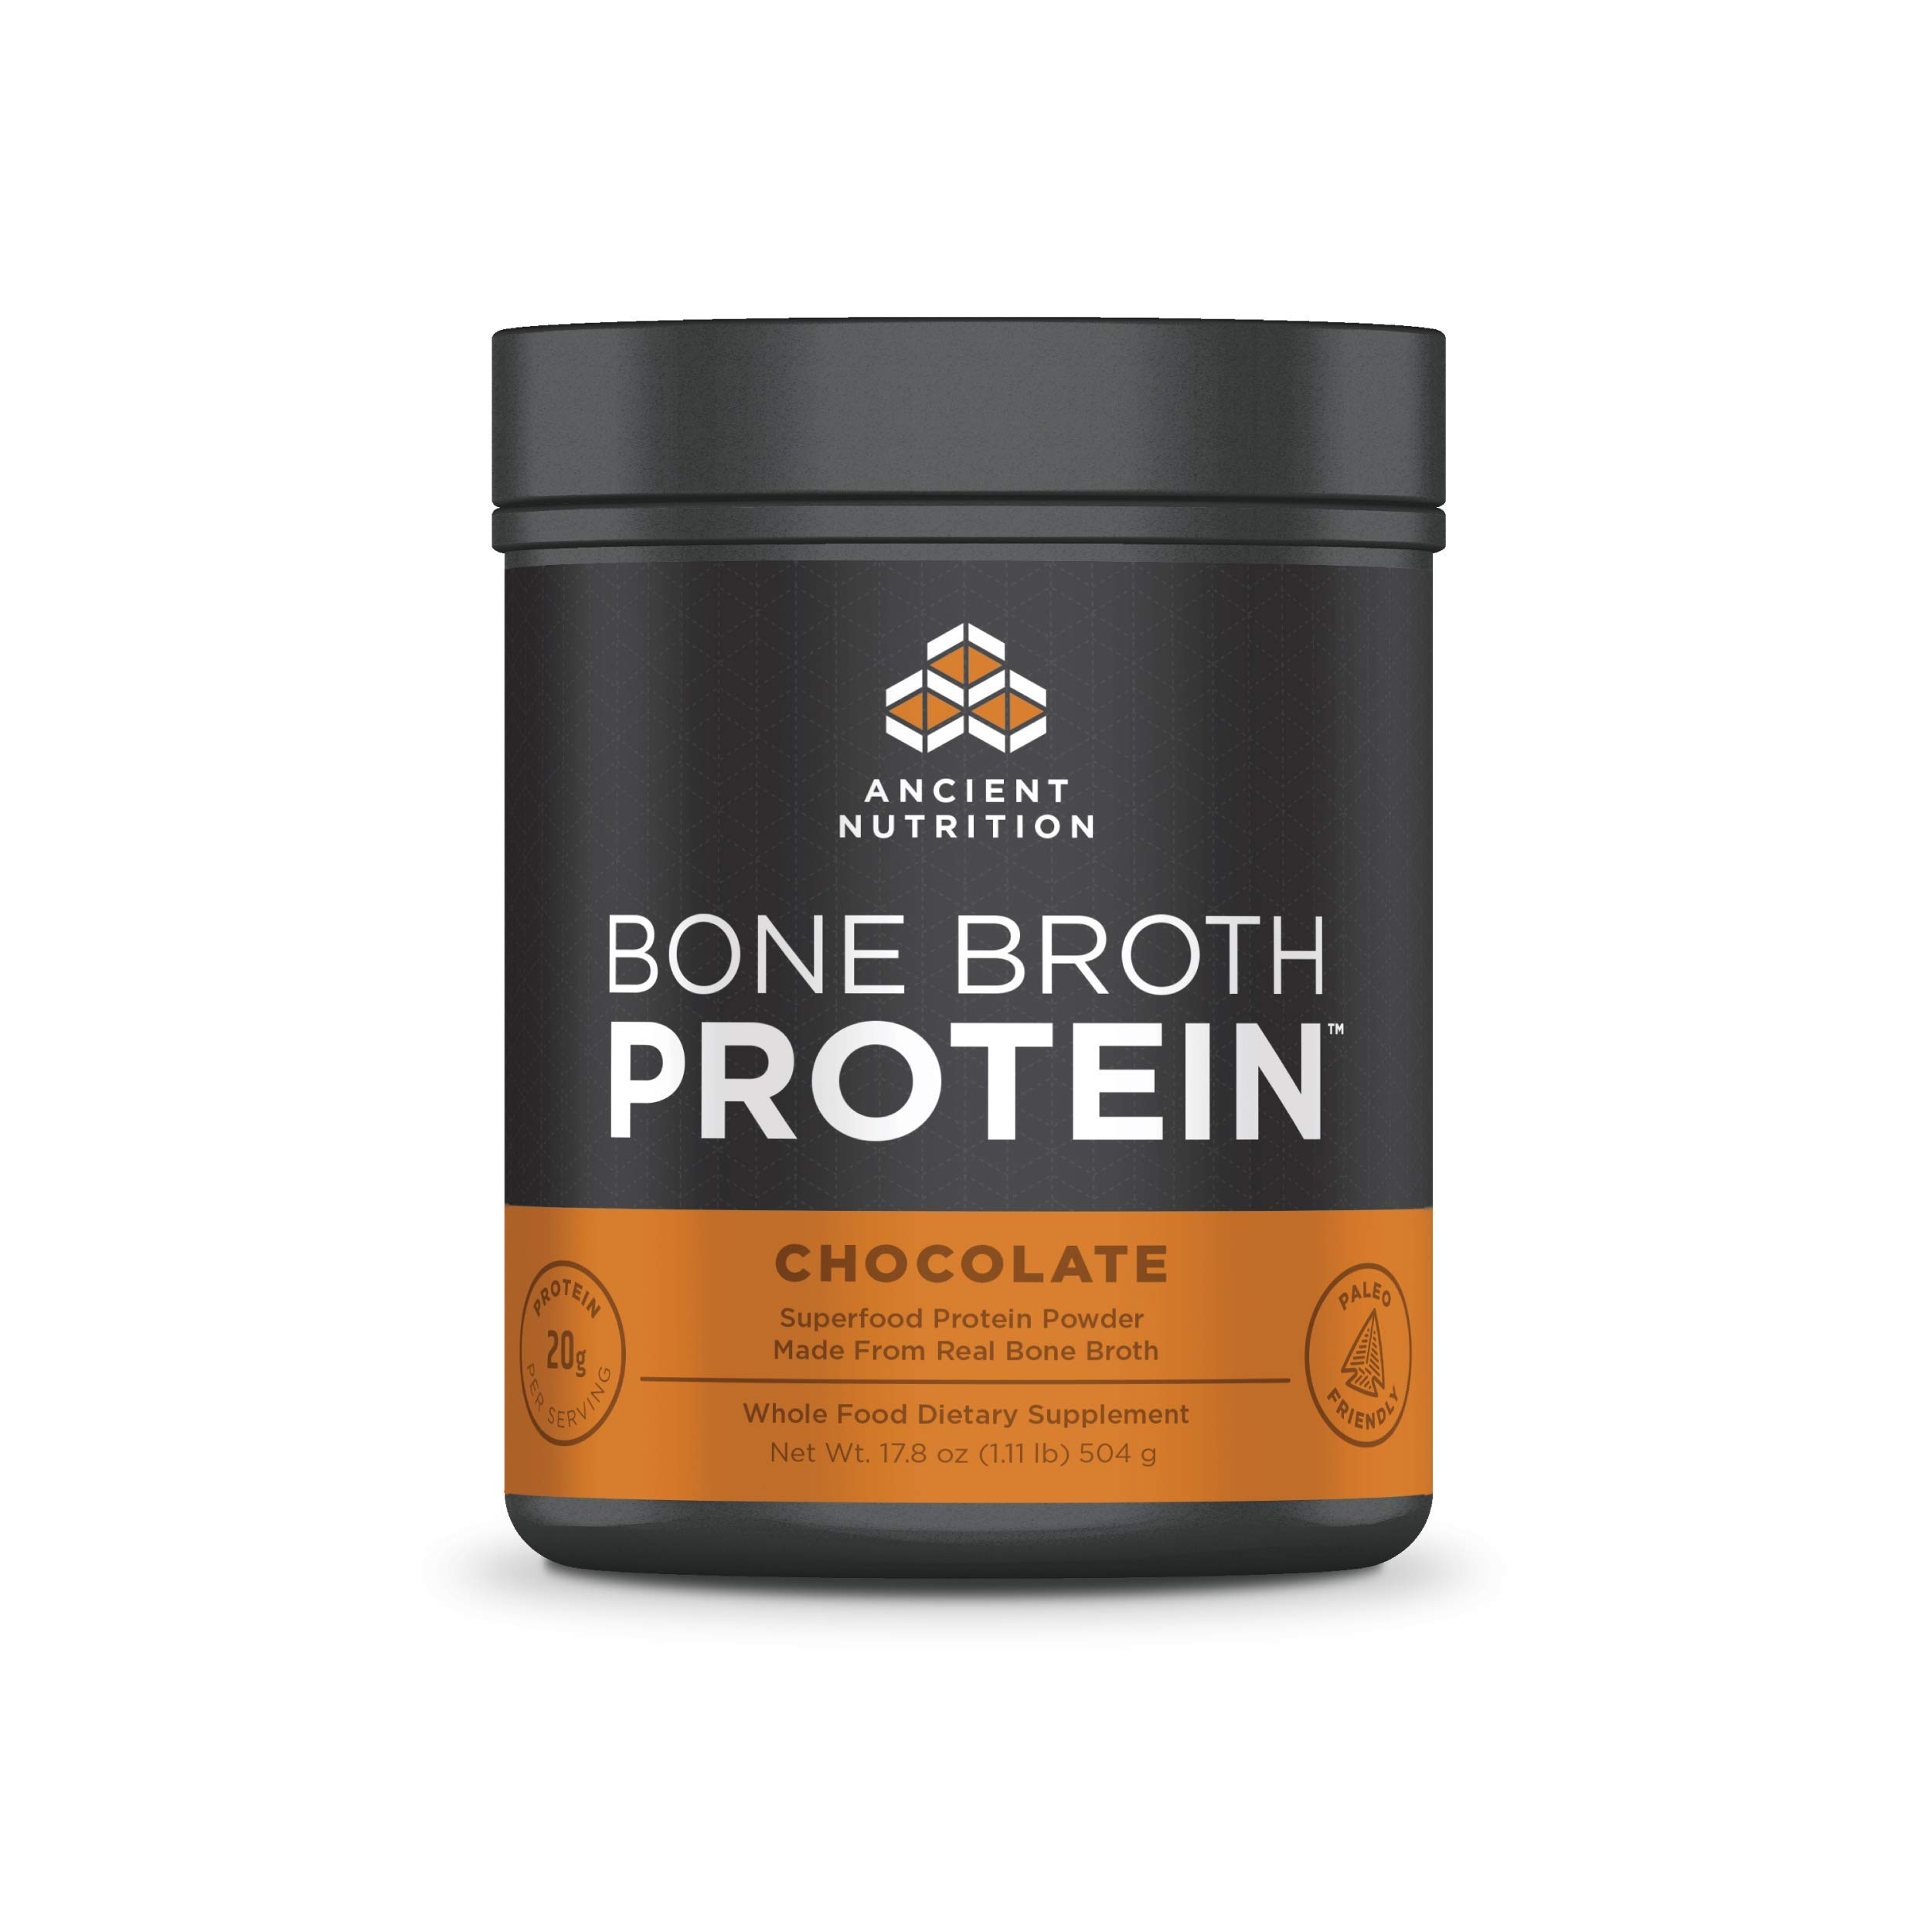 Ancient Nutrition Bone Broth Protein Powder, Chocolate - Dairy Free, Gluten Free and Paleo Friendly - 20 Servings